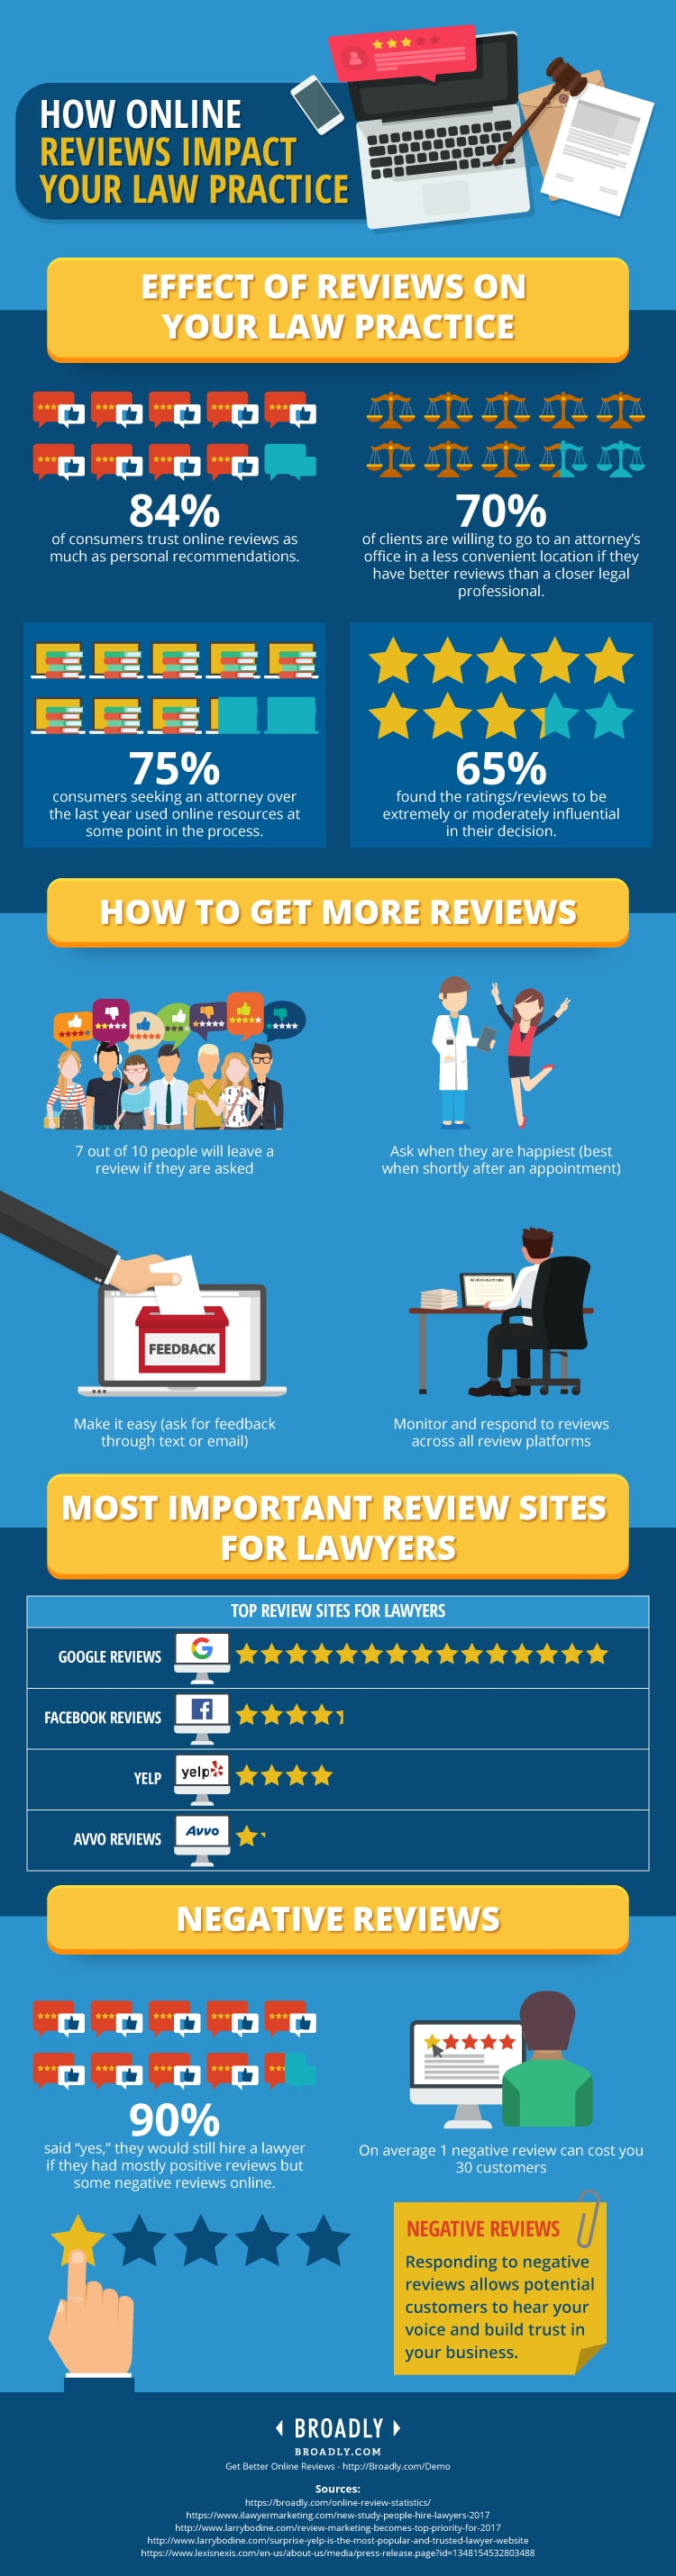 How Online Reviews Impact Law Firms